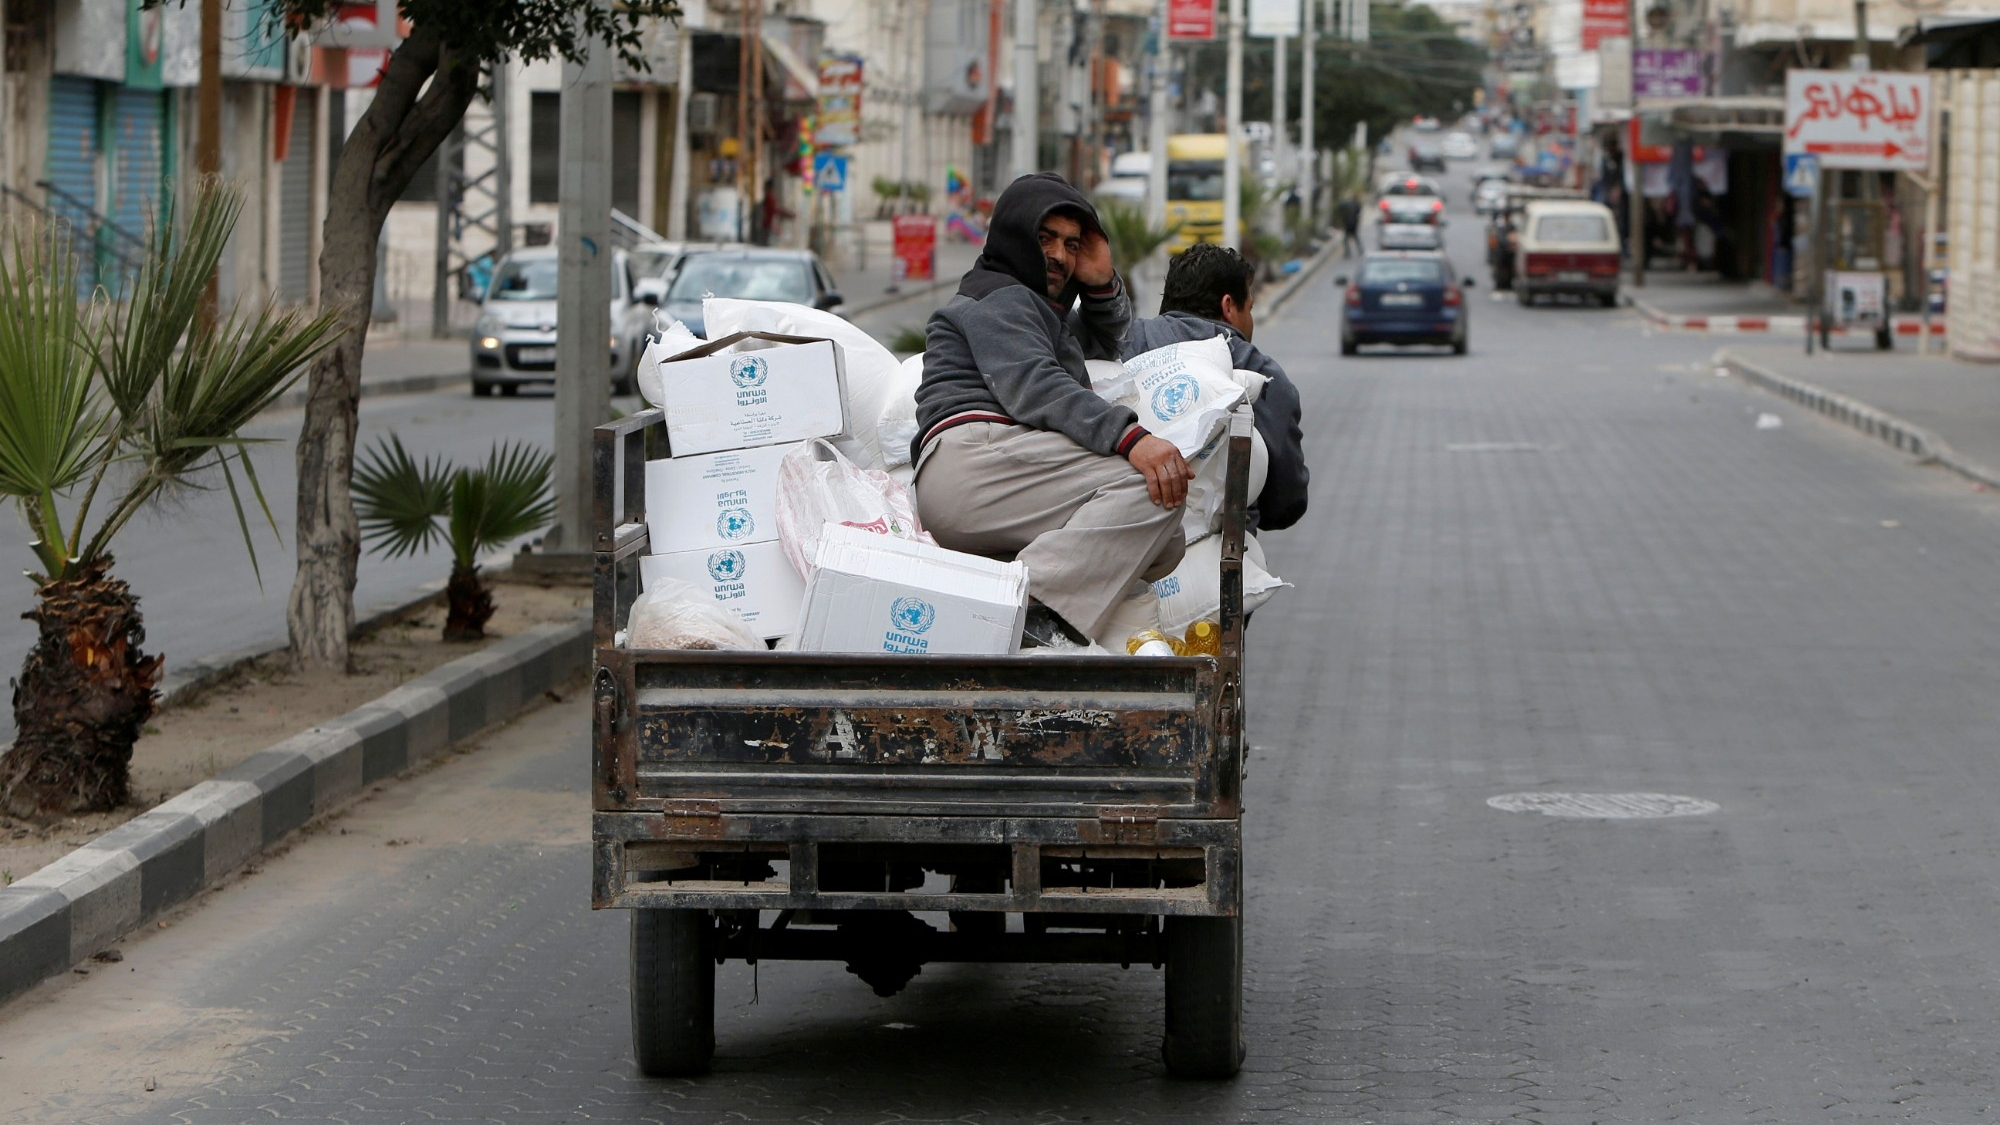 A worker rides on a vehicle transporting food supplies distributed by United Nations Relief and Works Agency to the homes of Palestinian refugees as a precaution against the spread of COVID-19, in Gaza City, March 31, 2020, photo by Mohammed Salem/Reuters